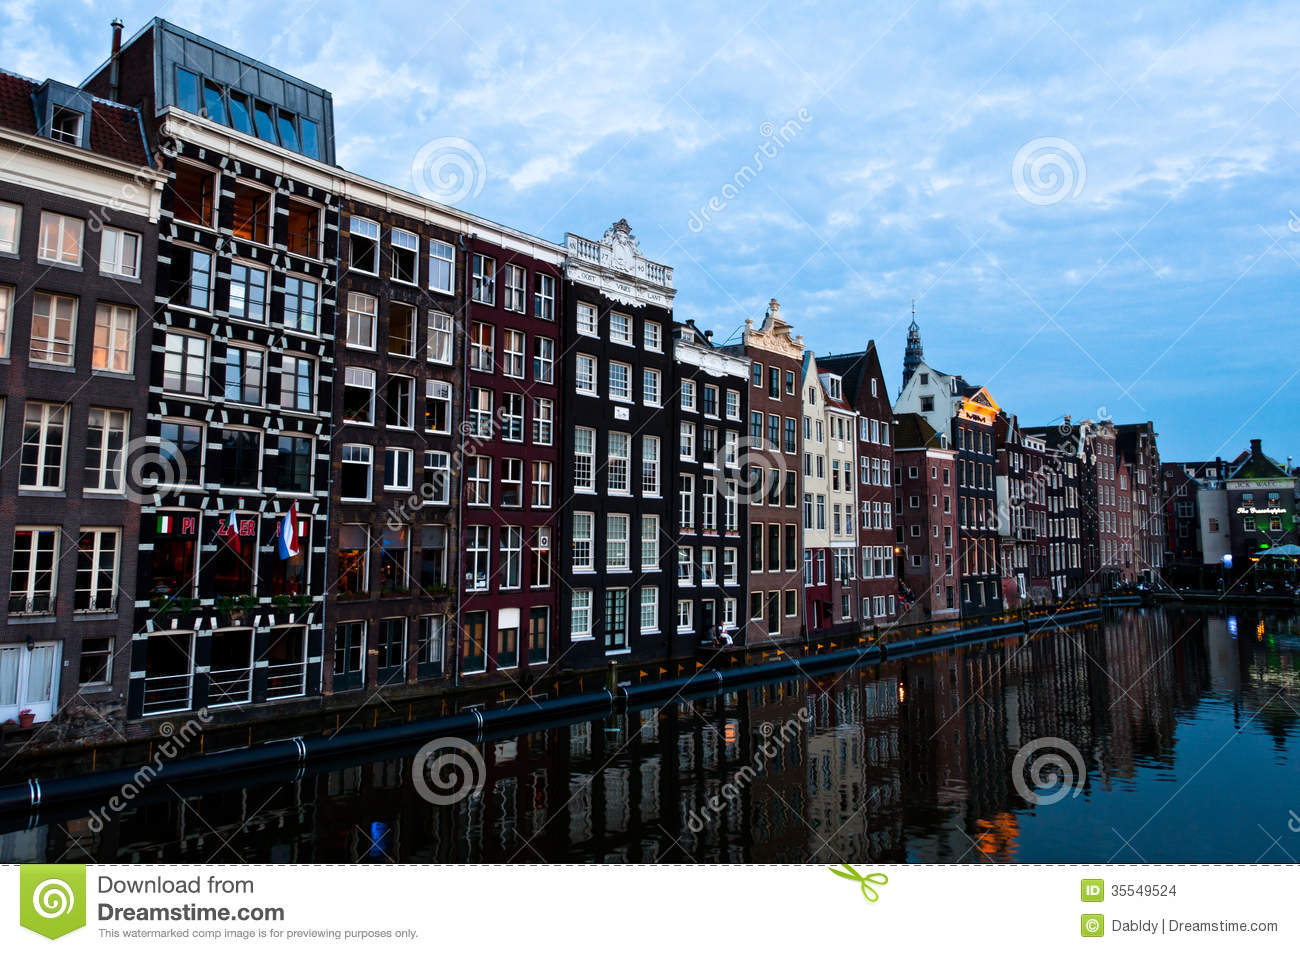 Dutch Dreams Traditional Dutch Architecture Houses Stock Photo - Image